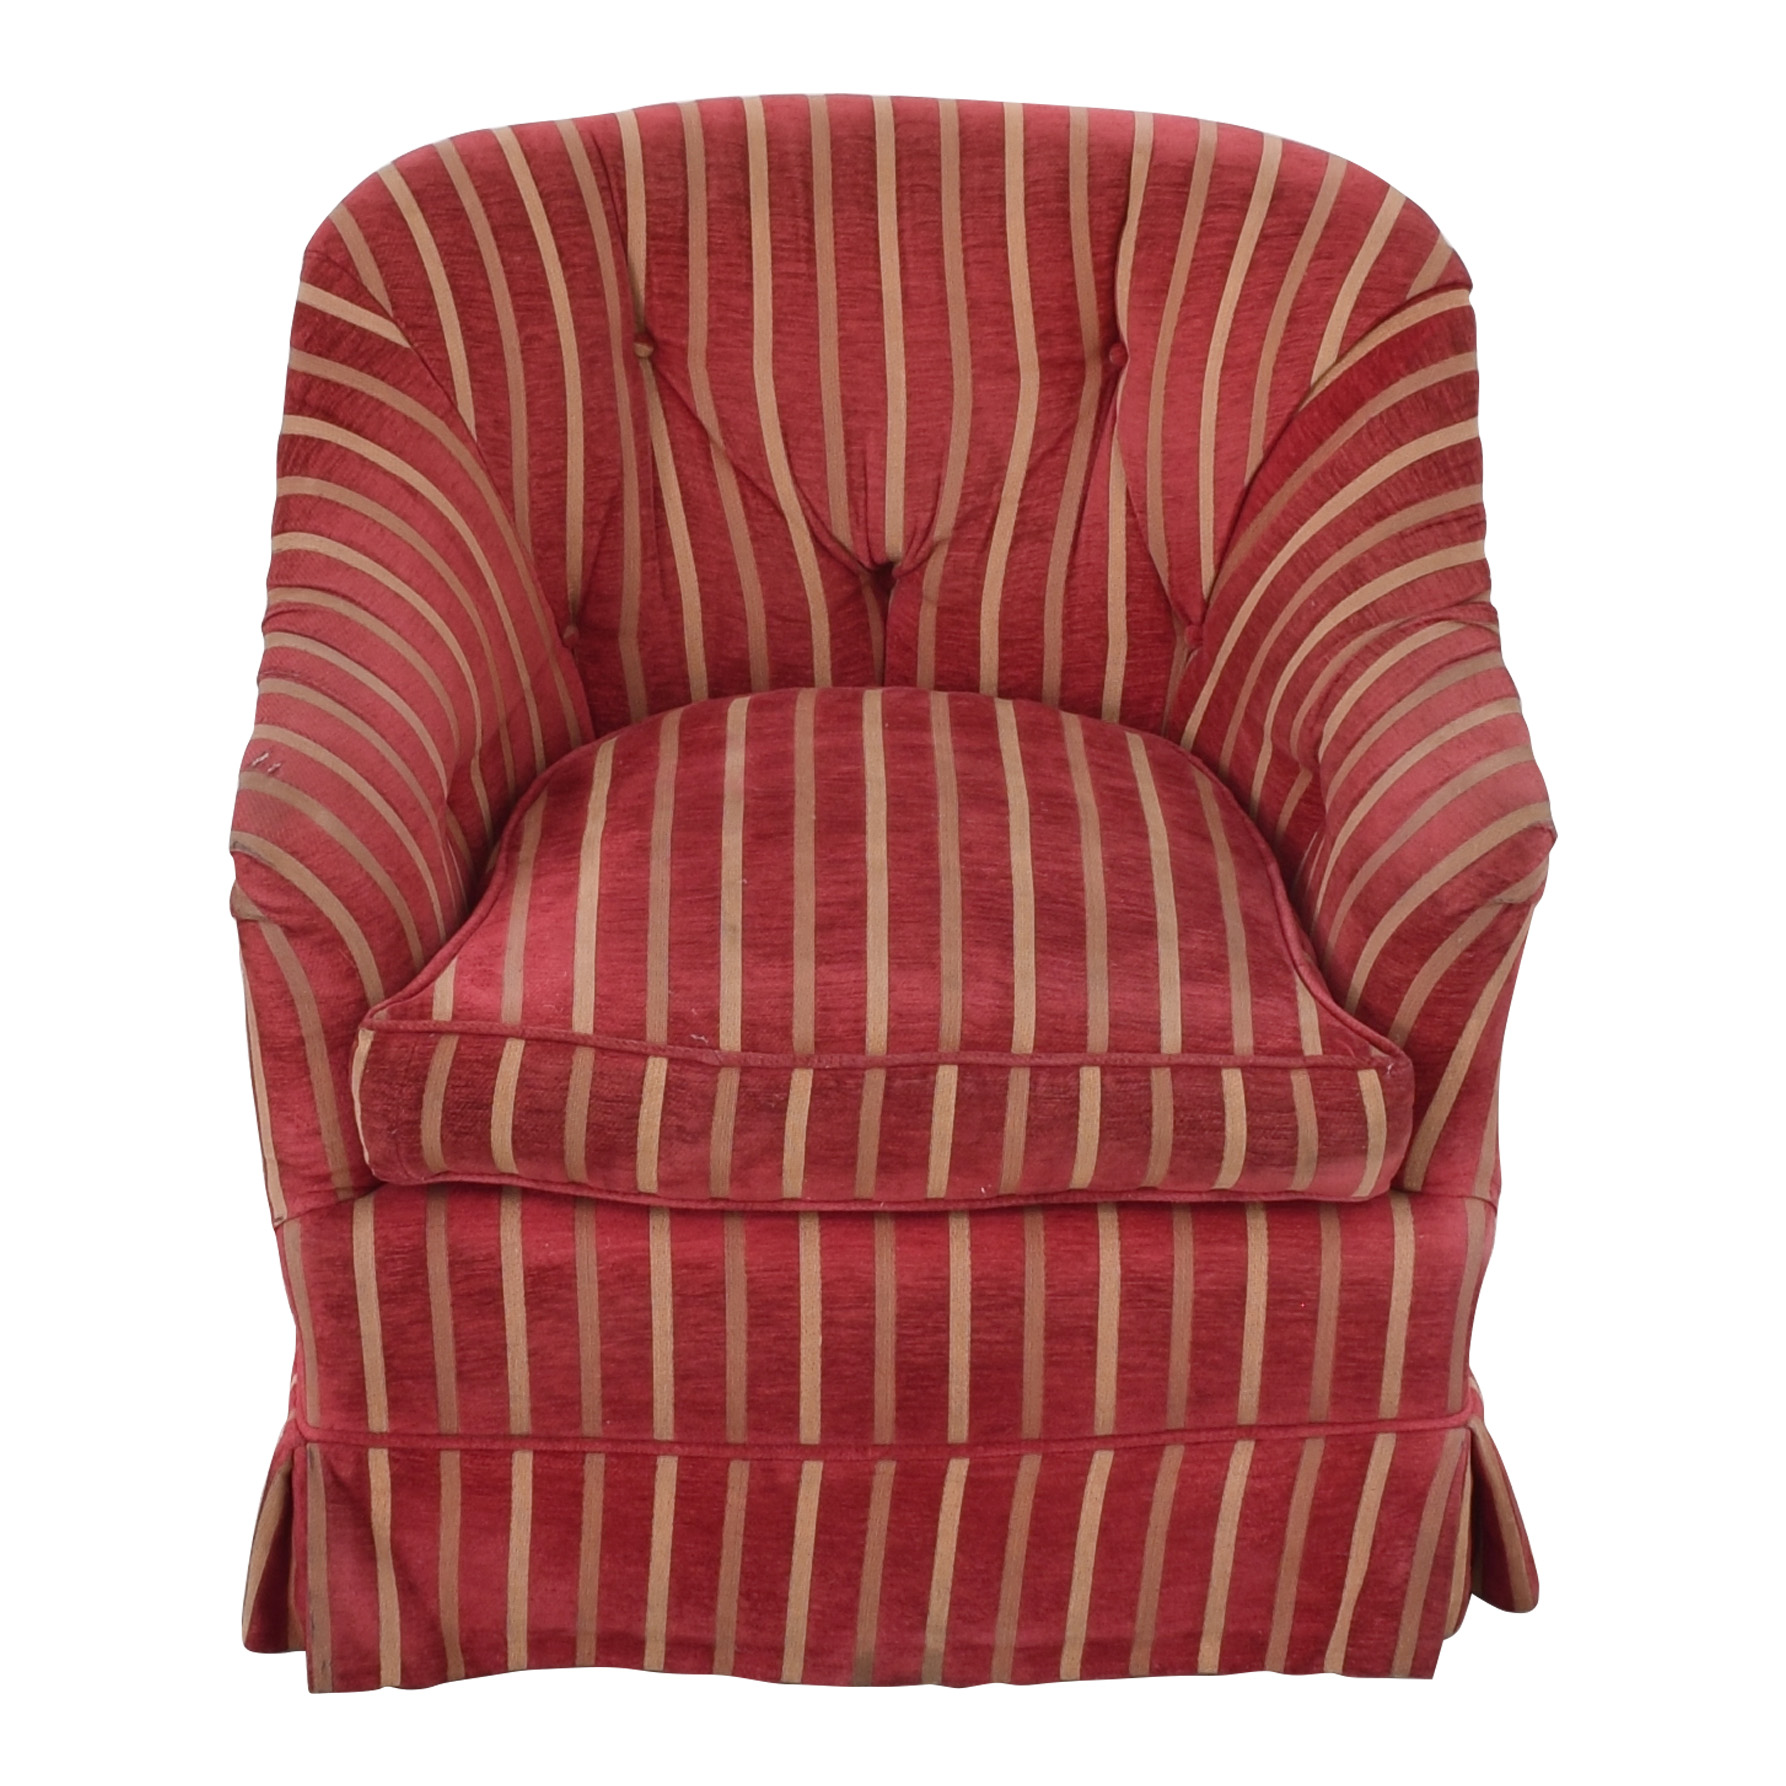 Pin-Tucked Swivel Arm Chair / Accent Chairs